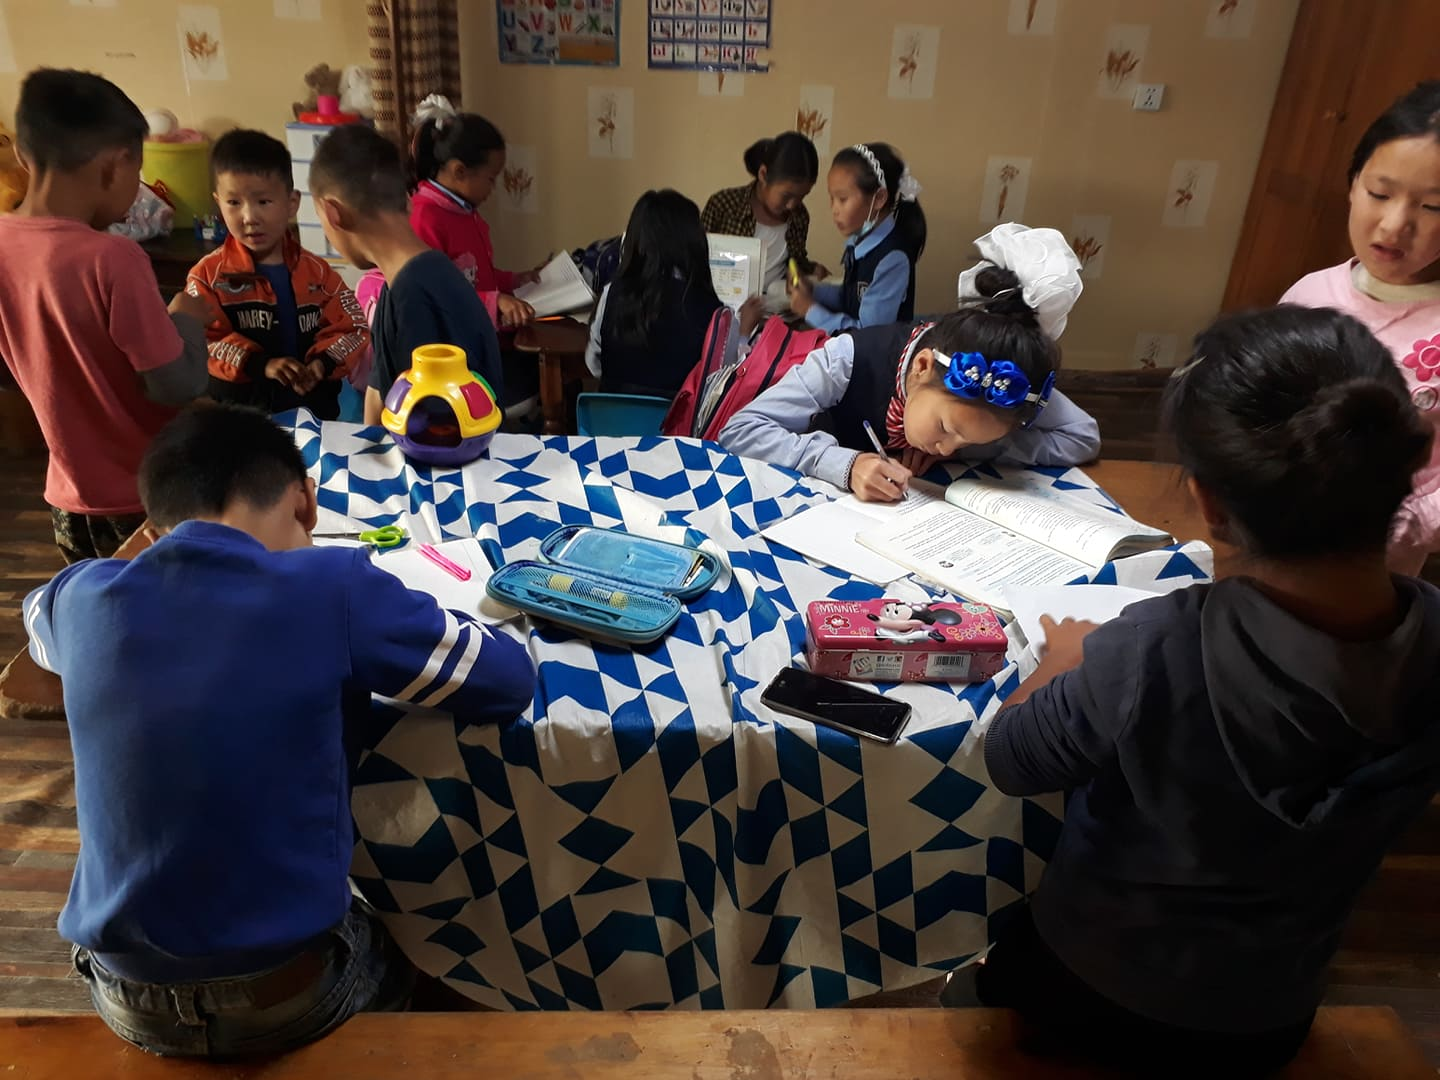 We are Restoring Church Gatherings – Encouraging News from Mongolia